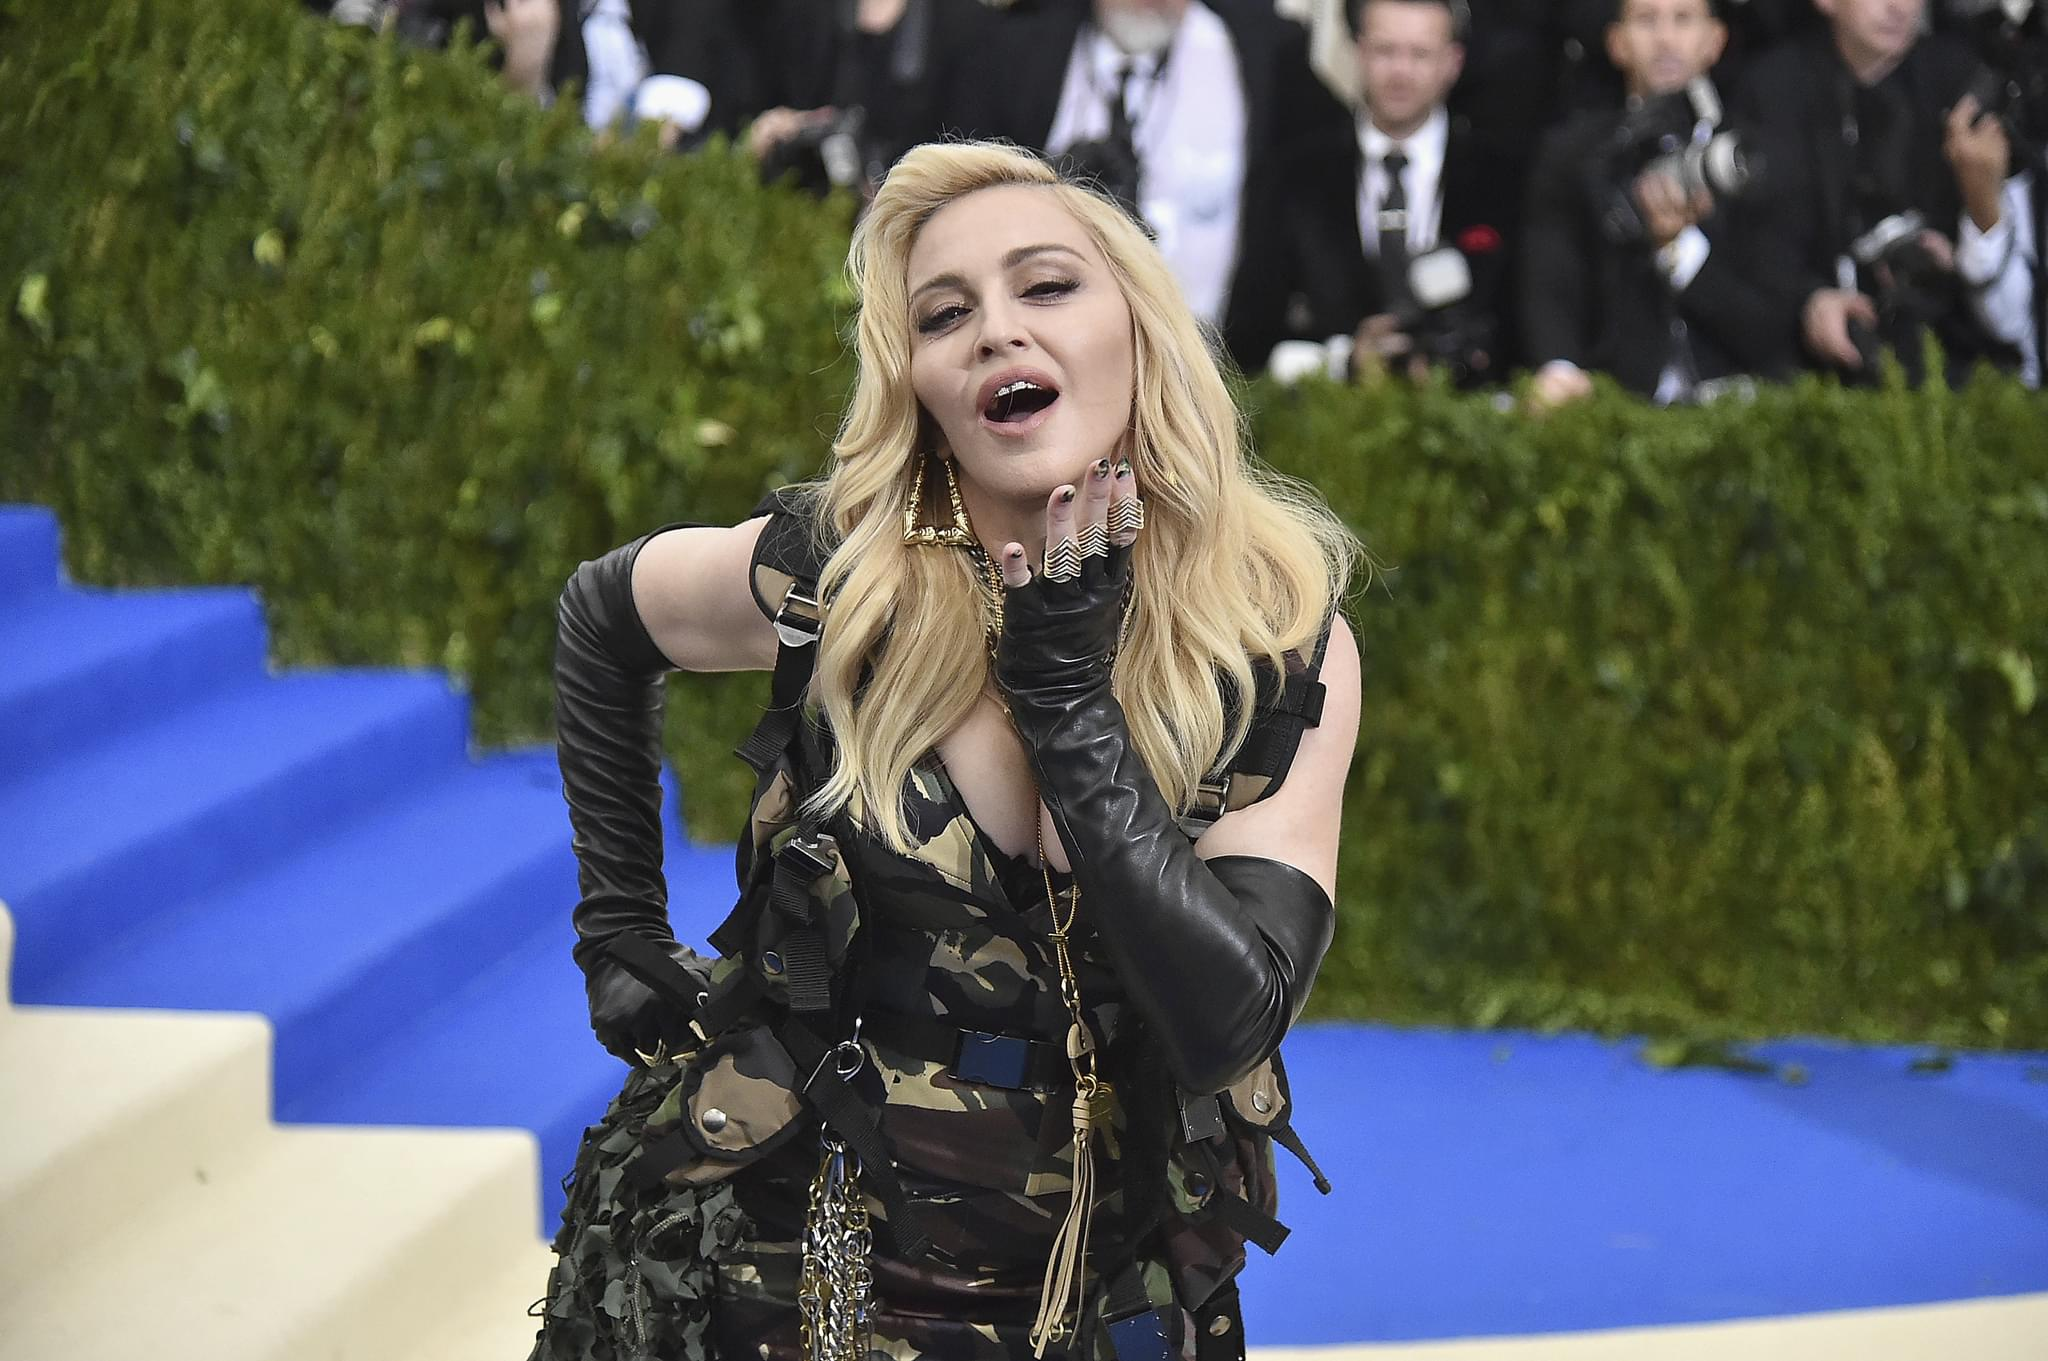 Madonna Posted Another Topless Selfie…Again